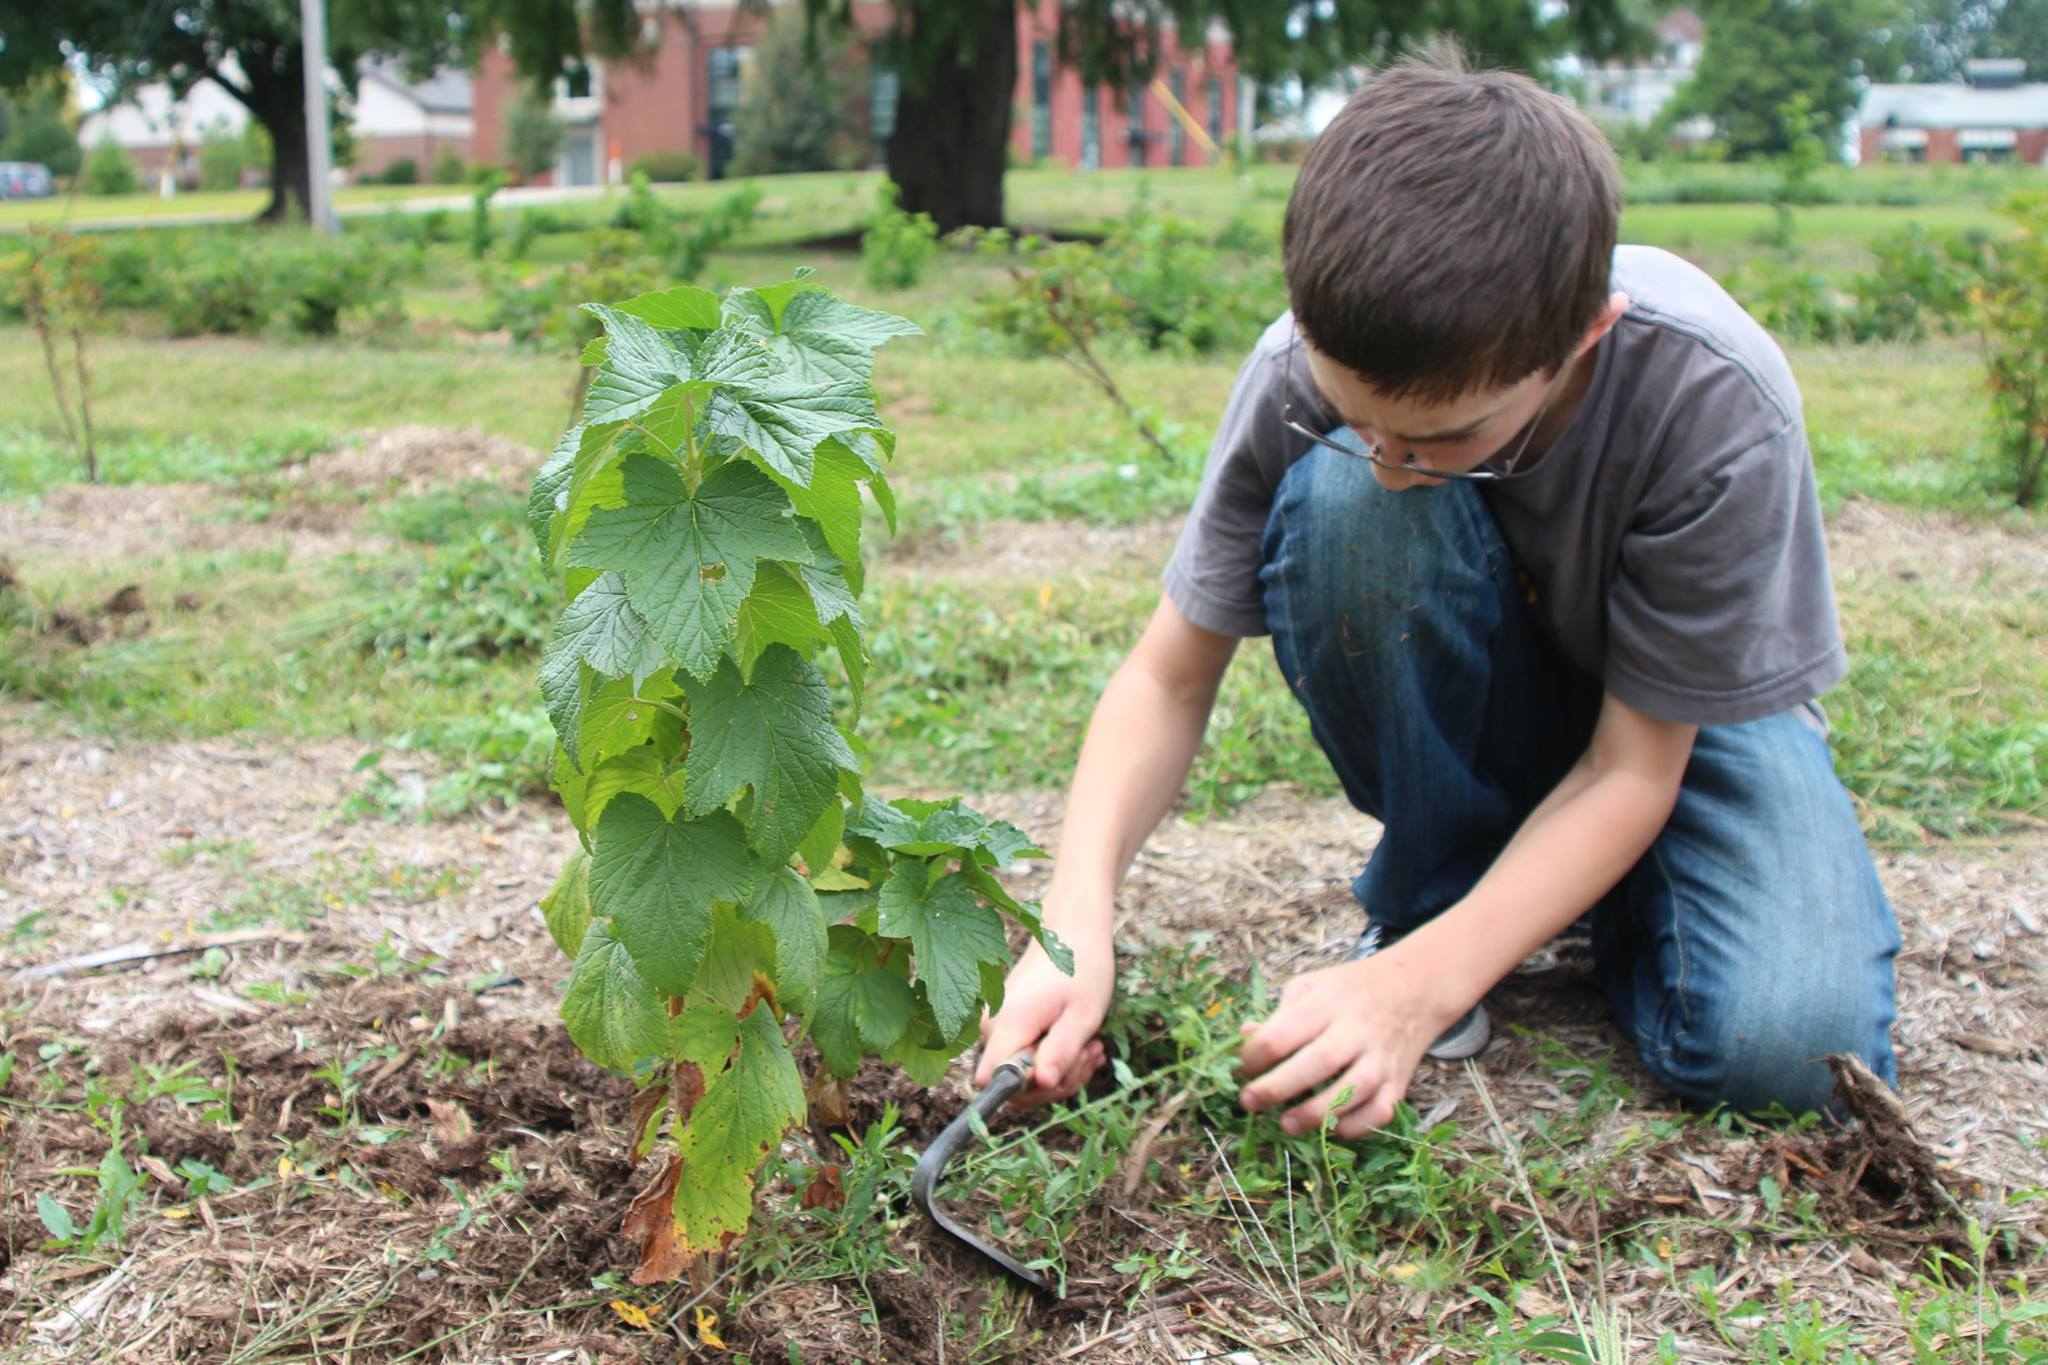 youth help plant tree at the Food Forest in Normal, IL